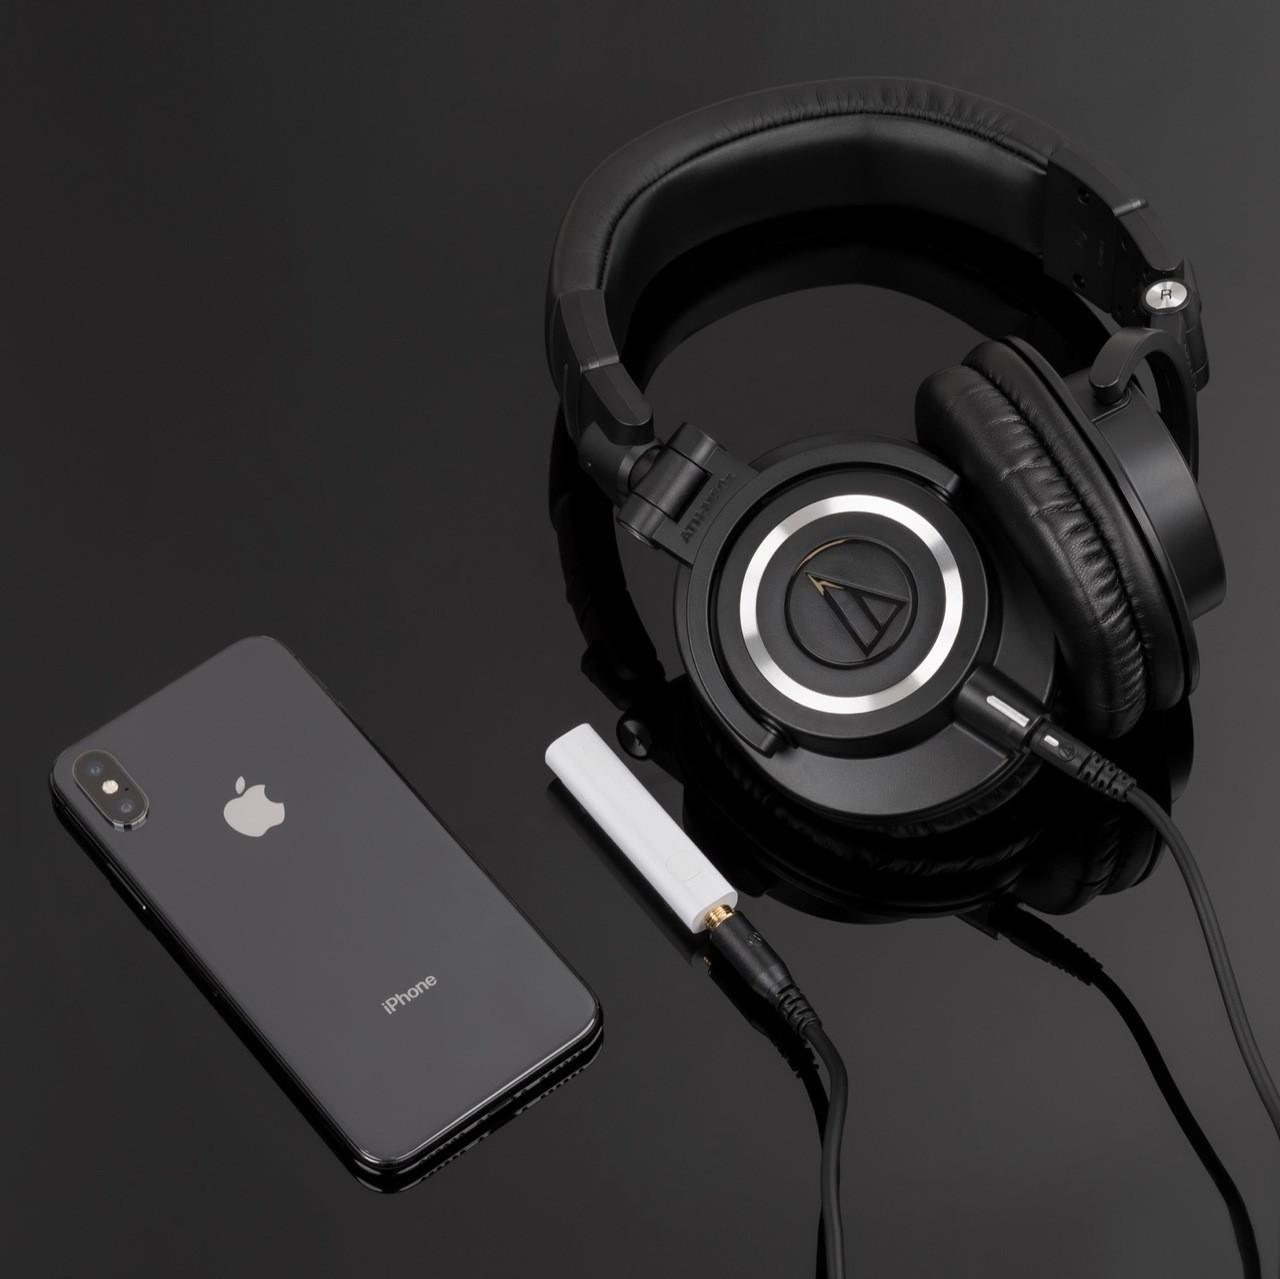 KonnecK Bluetooth Audio Adapter * Forget about being tethered by the length of your wired headphones cable * It is extremely light, wonderfully small ((L x W x H): 5.90 x 1.35 x 1.30 cm / 2.32 x 0.53 x 0.51 inches) and easy to store in your pockets